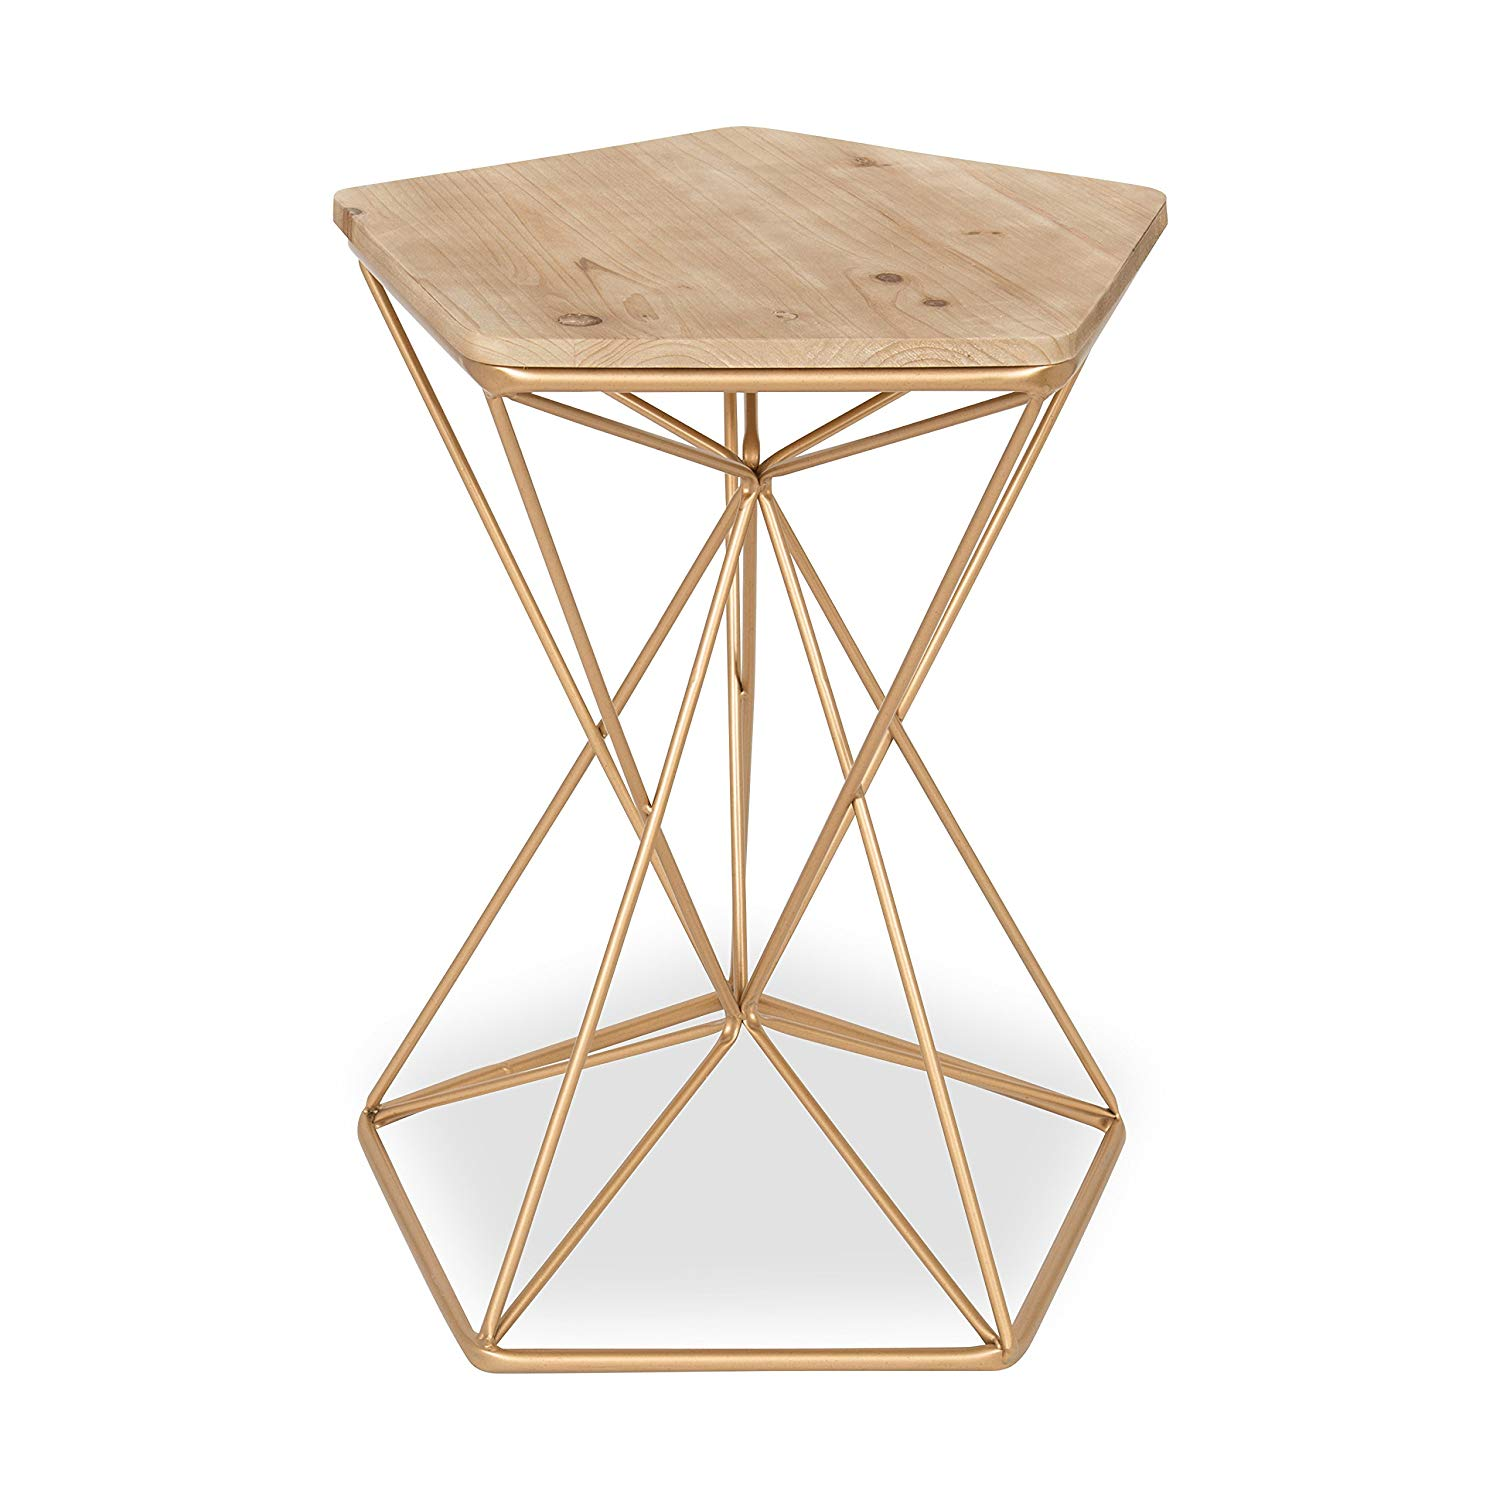 kate and laurel ulane metal side accent table with rose gold natural wood top home kitchen brass nest tables contemporary marble dining unusual bedside outdoor furniture covers